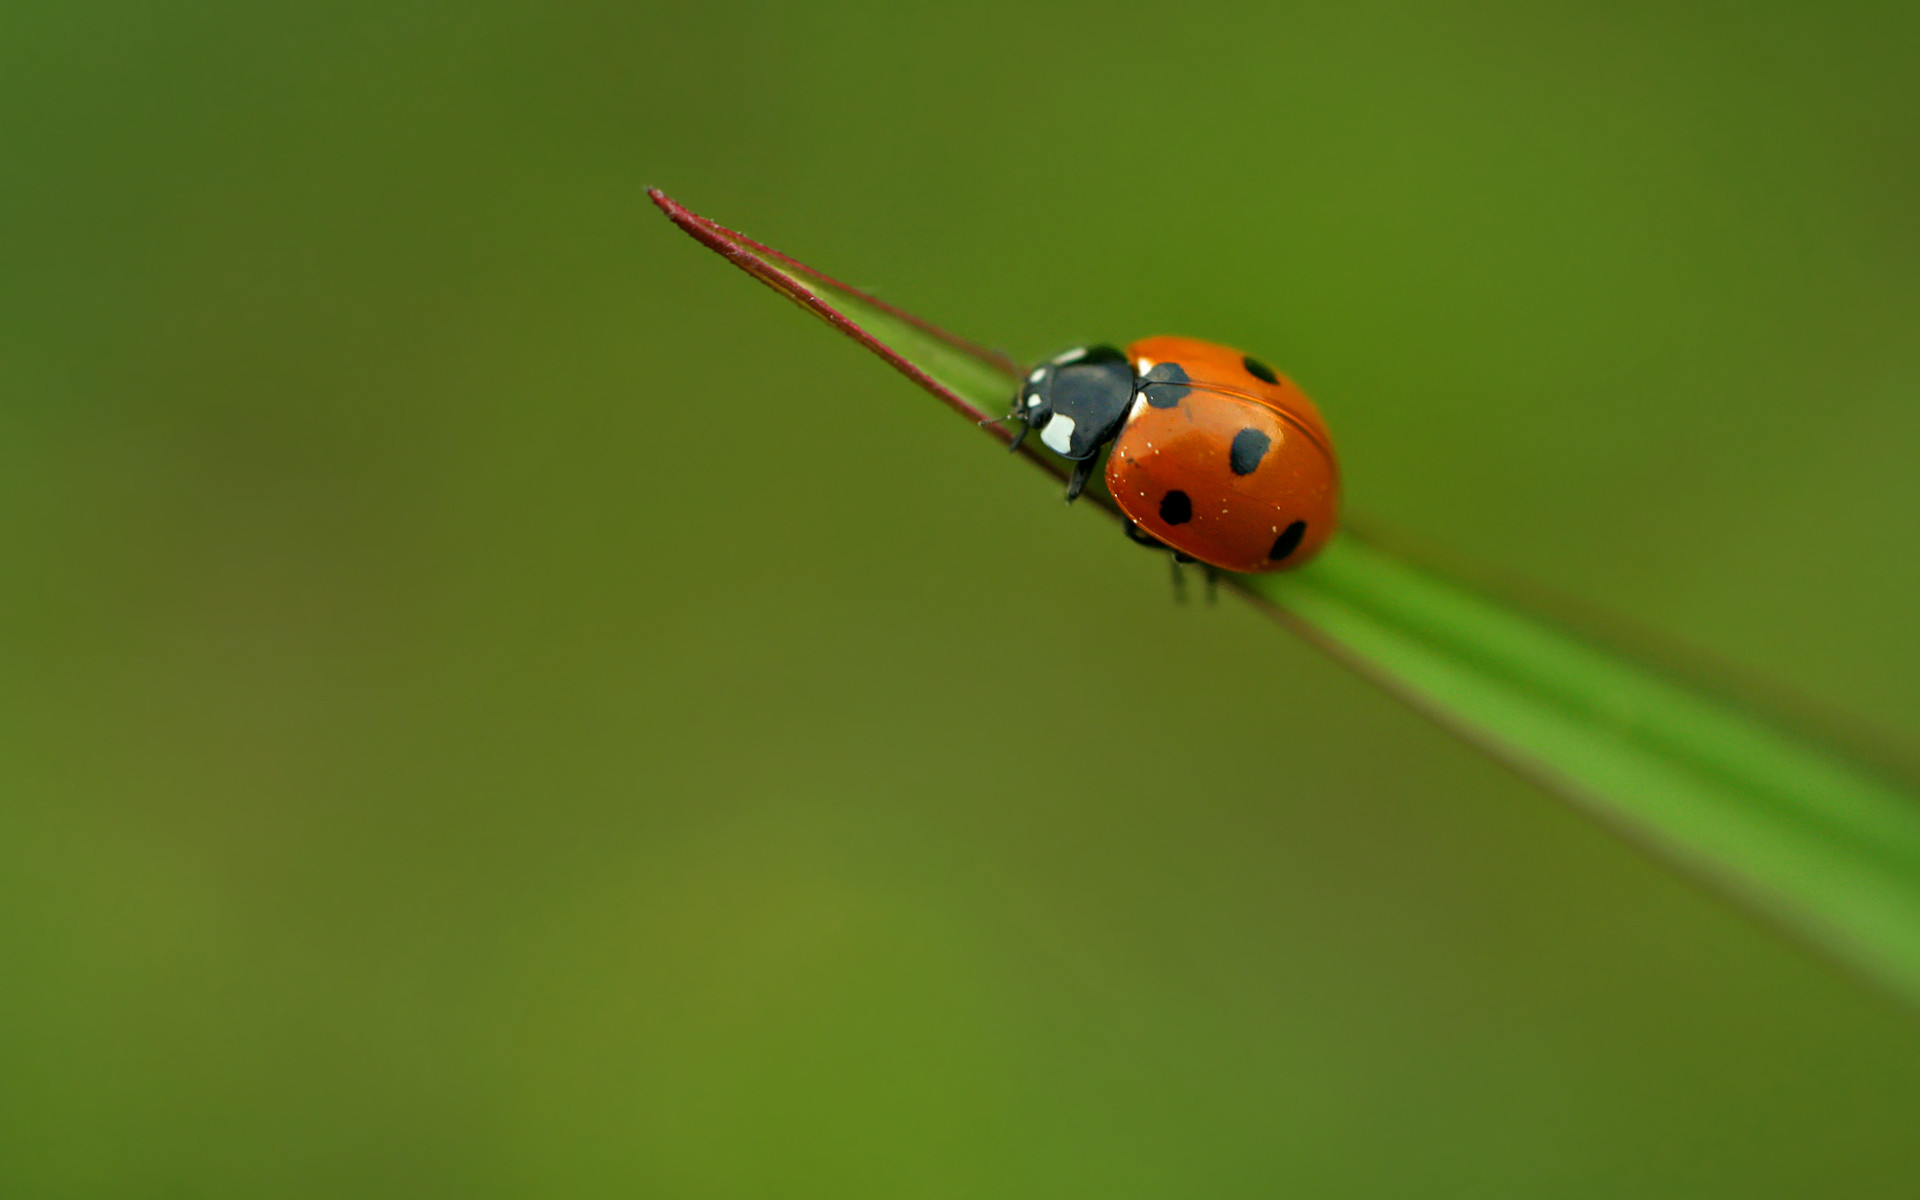 Res: 1920x1200, 10 Lovely HD Ladybug Wallpapers - HDWallSource.com